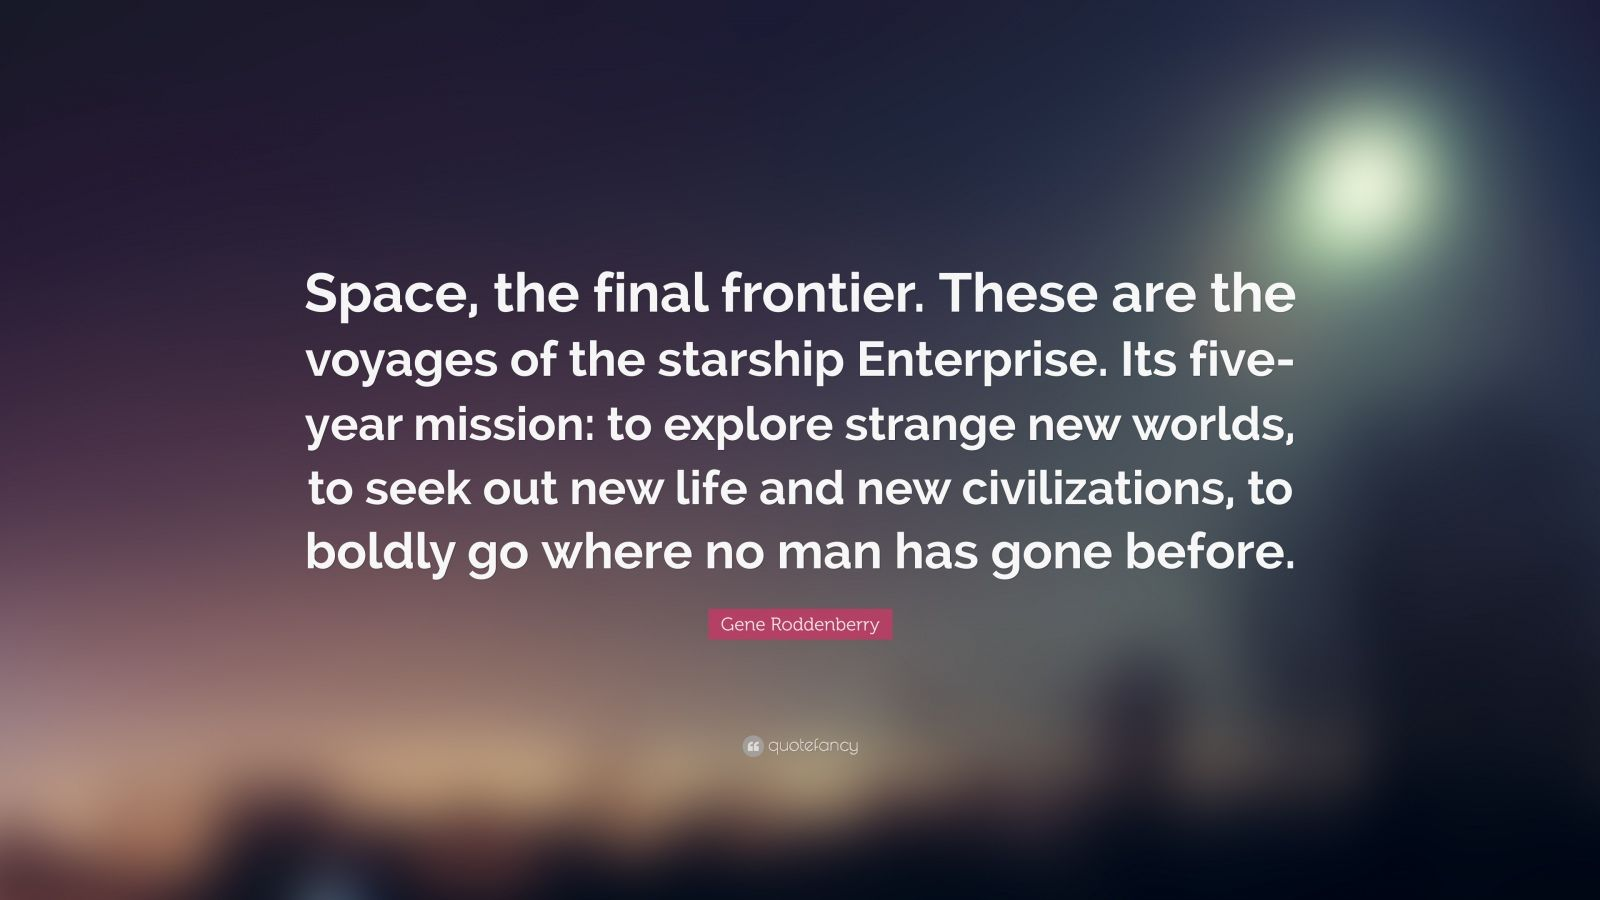 "Gene Roddenberry Quote: ""Space, the final frontier. These are the voyages of the starship Enterprise. Its five-year mission: to explore strange new worlds, to seek out new life and new civilizations, to boldly go where no man has gone before."""